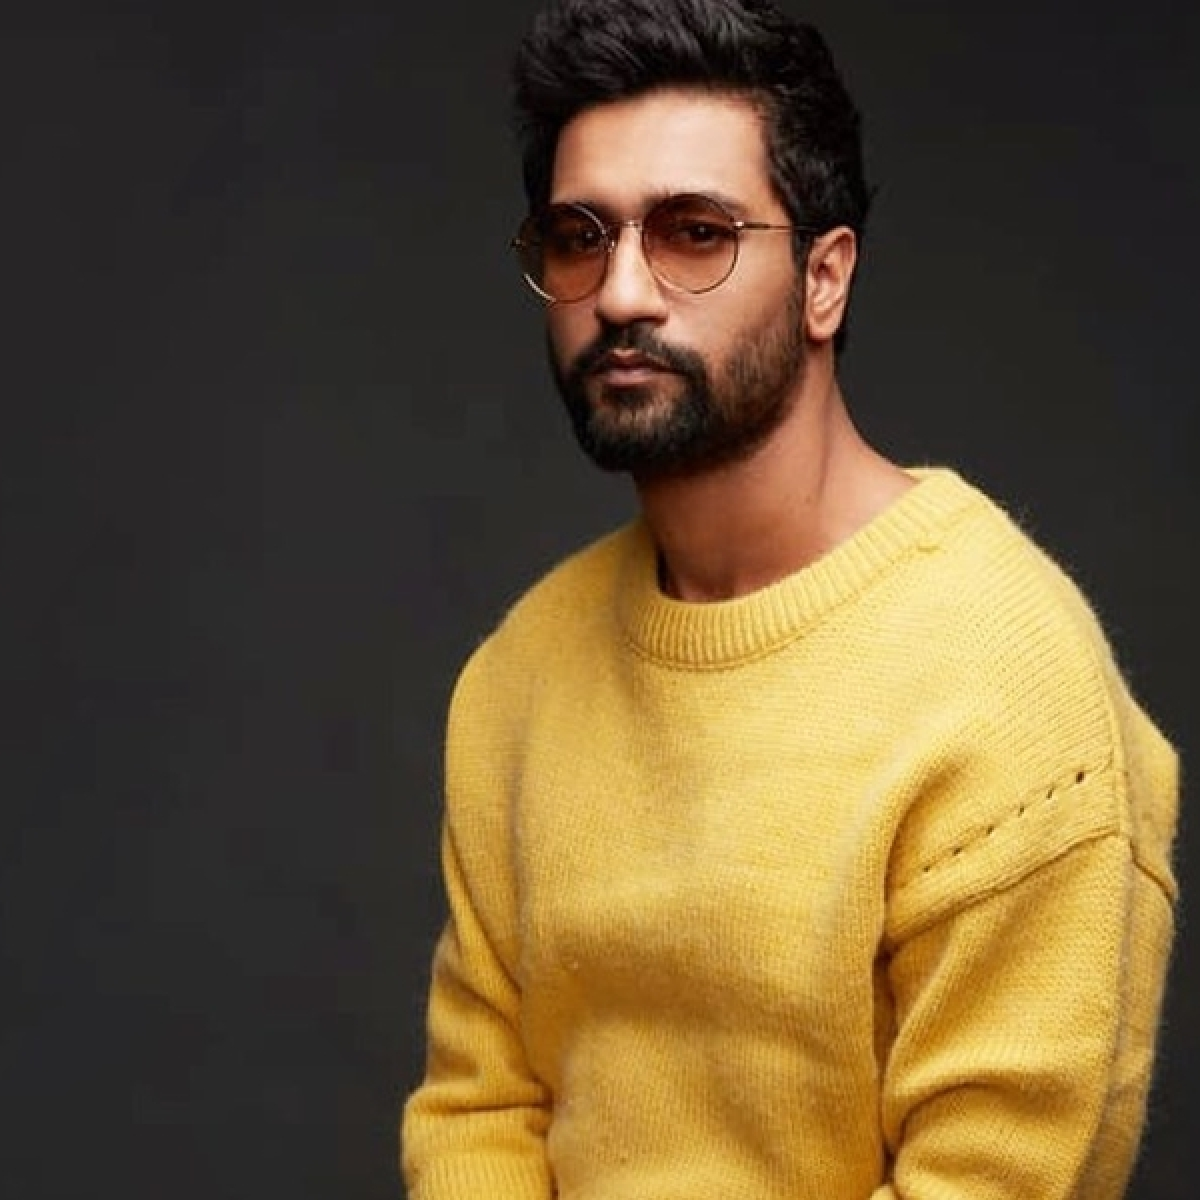 Won't find any plastic bottles on our film sets: Vicky Kaushal on single-use-plastic